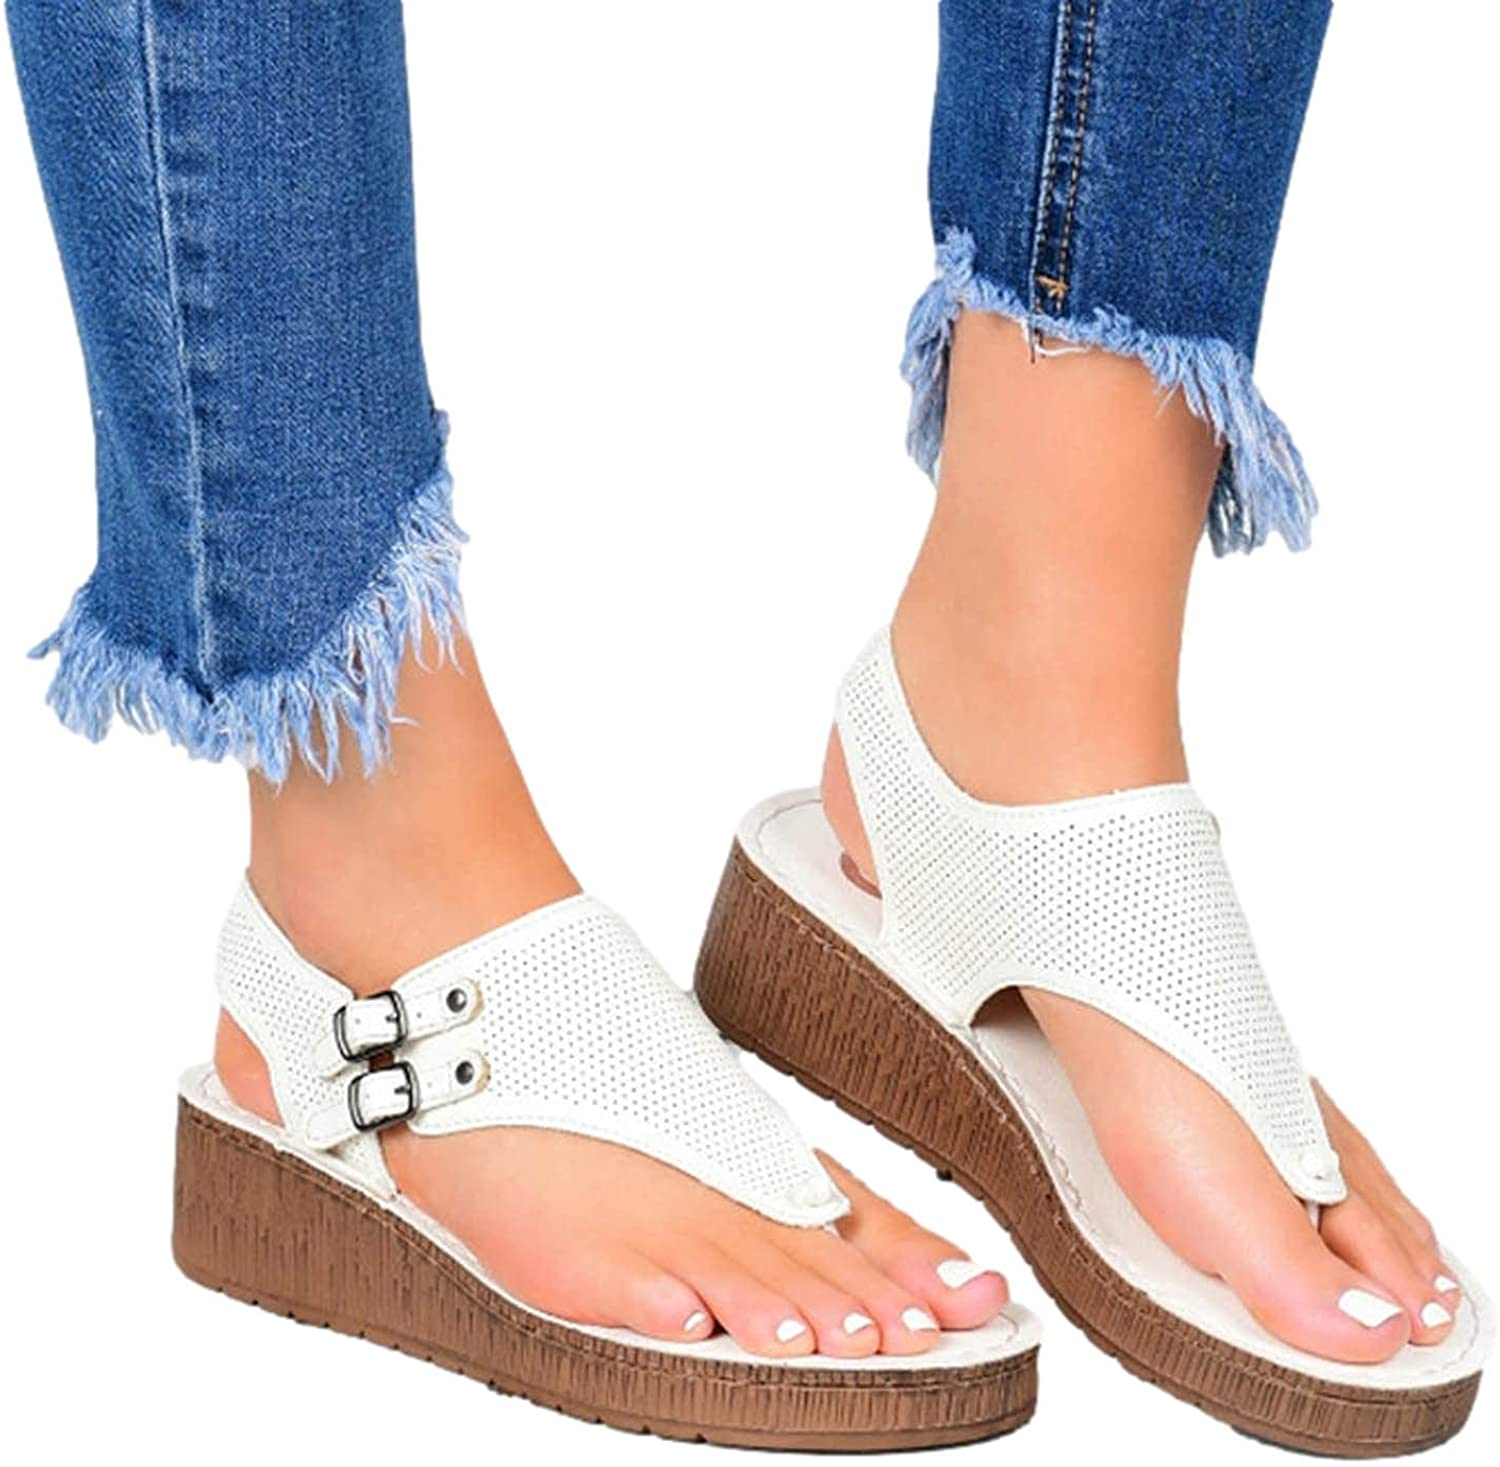 Summer Orthopedic Sandals for Womens Casual Bunion Orthopedic Slippers Correction Leather Ring Toe Flip Flops